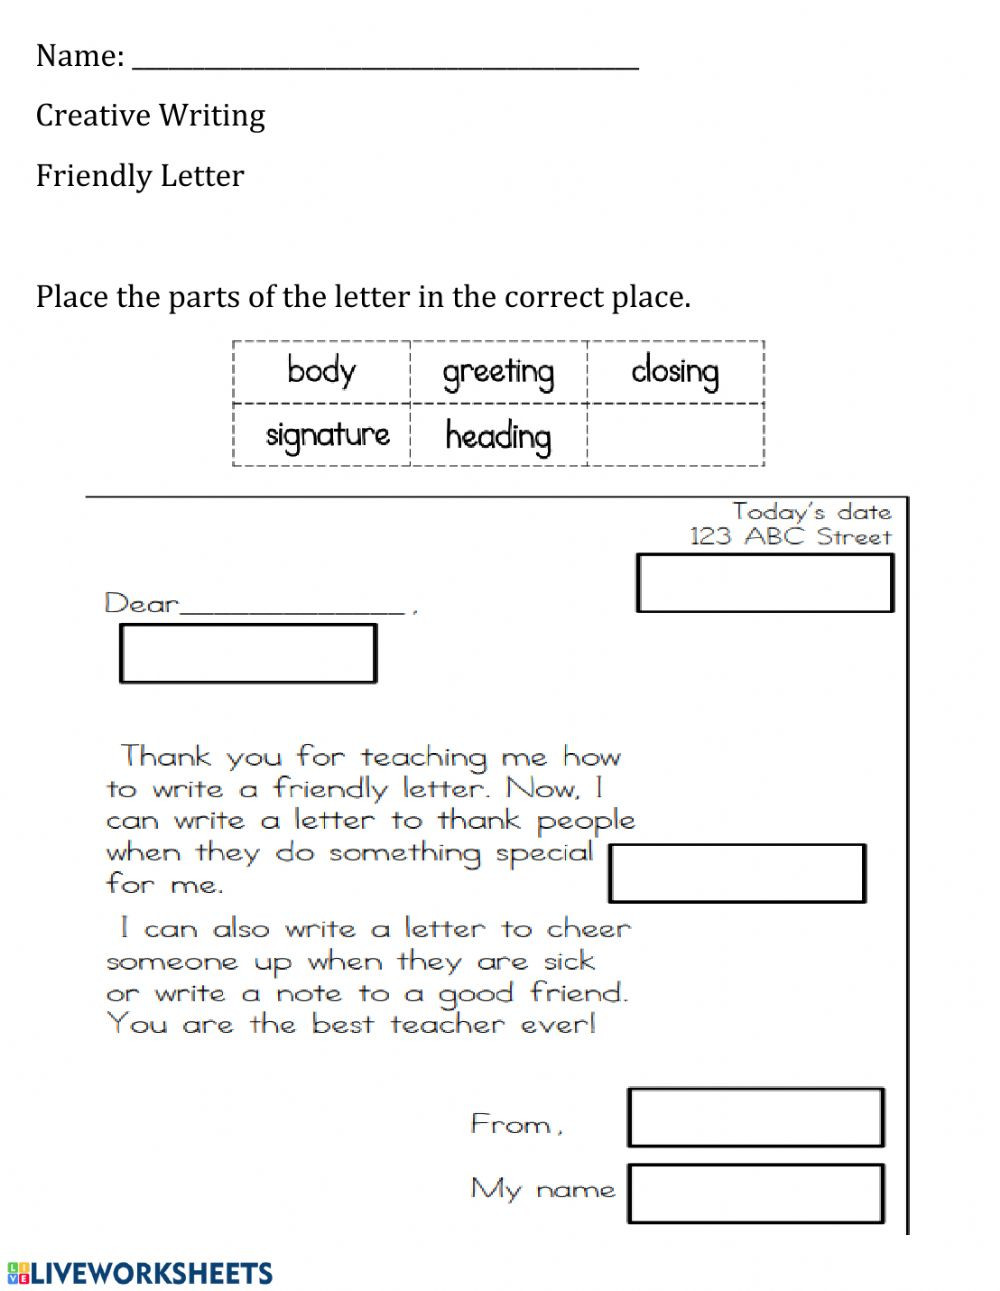 Writing A Friendly Letter Worksheet Parts Of the Friendly Letter Worksheet